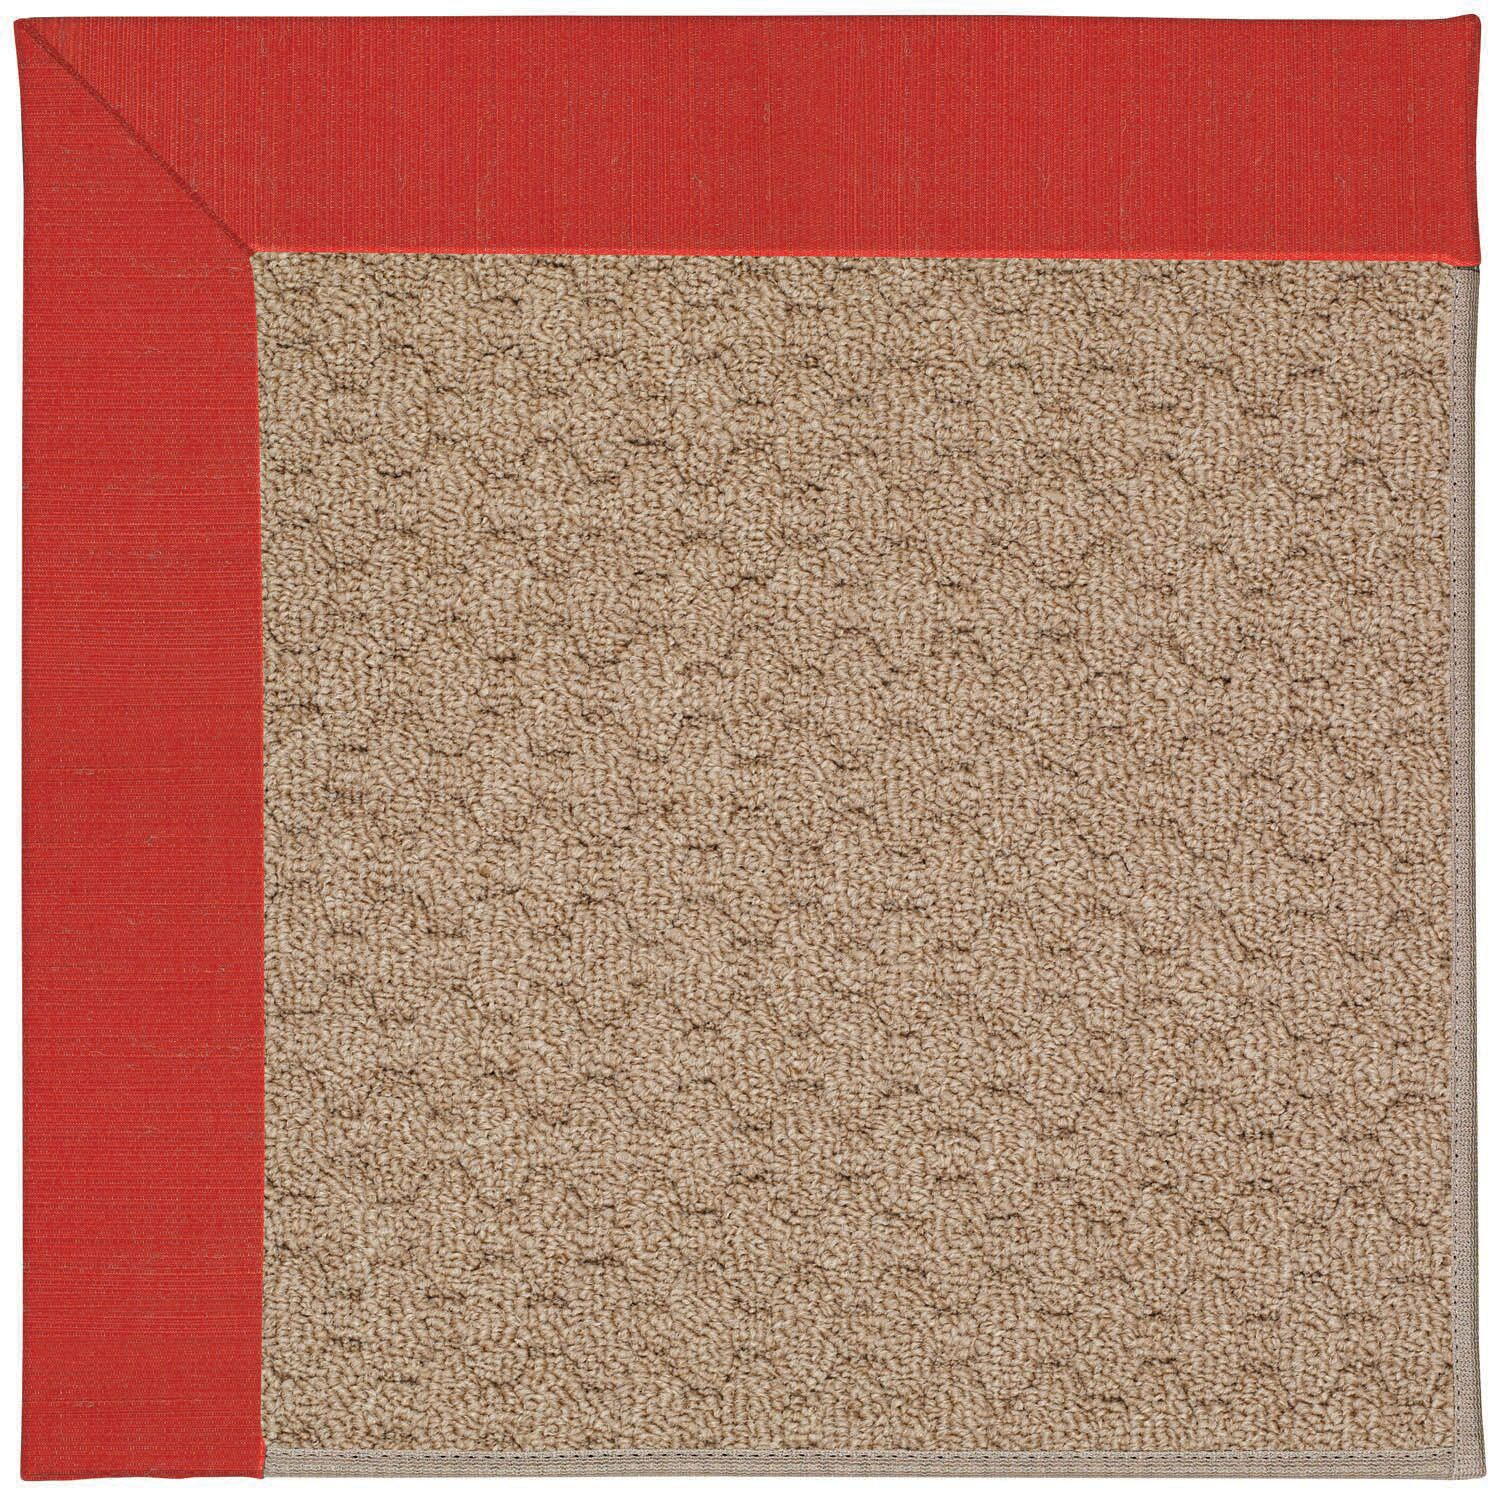 Lisle Machine Tufted Red/Brown Indoor/Outdoor Area Rug Rug Size: Rectangle 4' x 6'